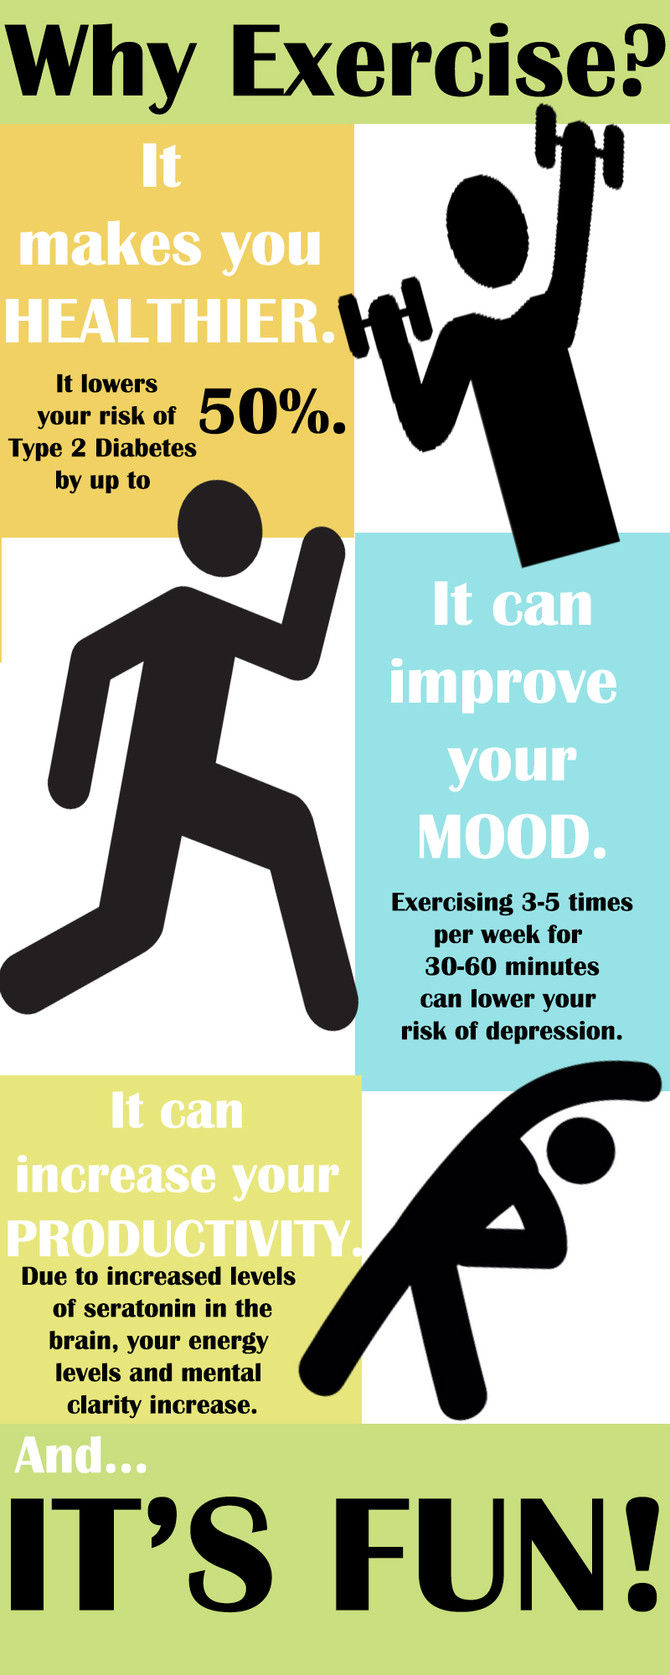 The benefits of exercise far outweigh the cost